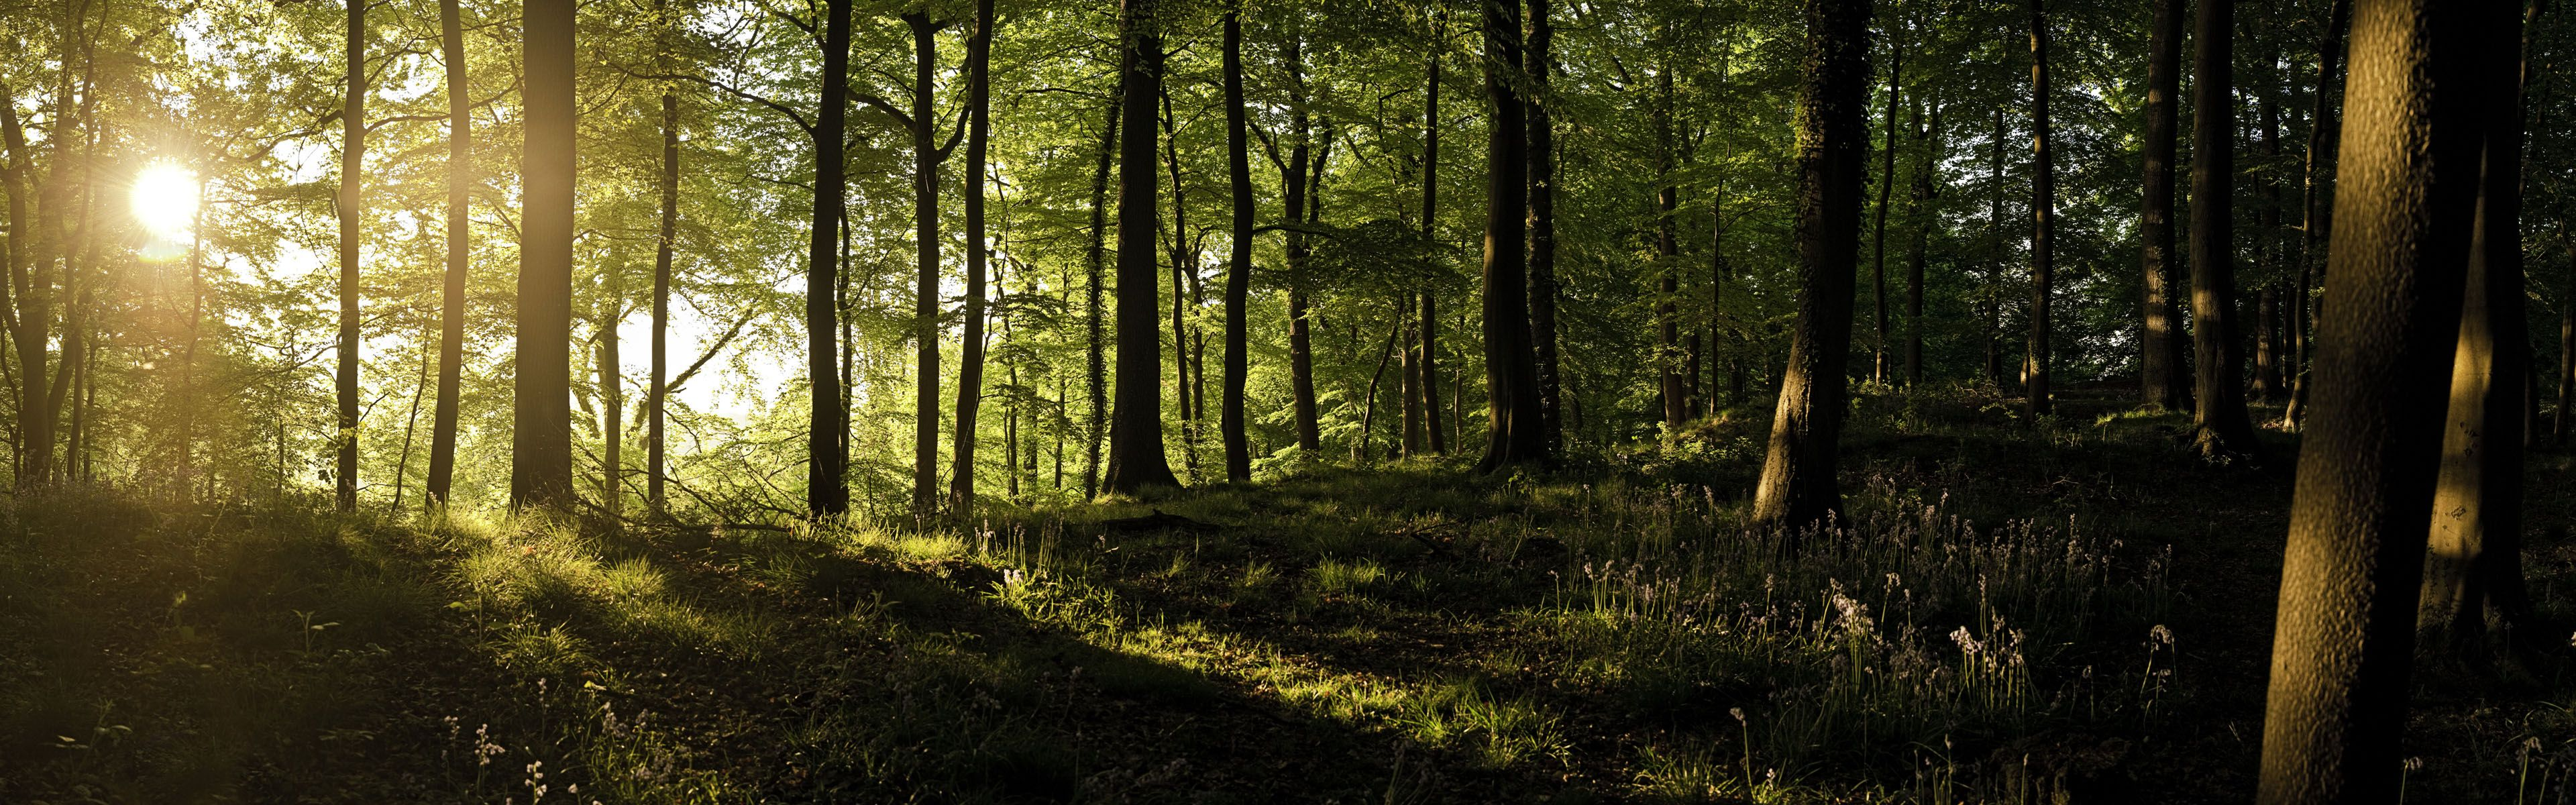 Forest Dual Screen Wallpapers Top Free Forest Dual Screen Backgrounds Wallpaperaccess